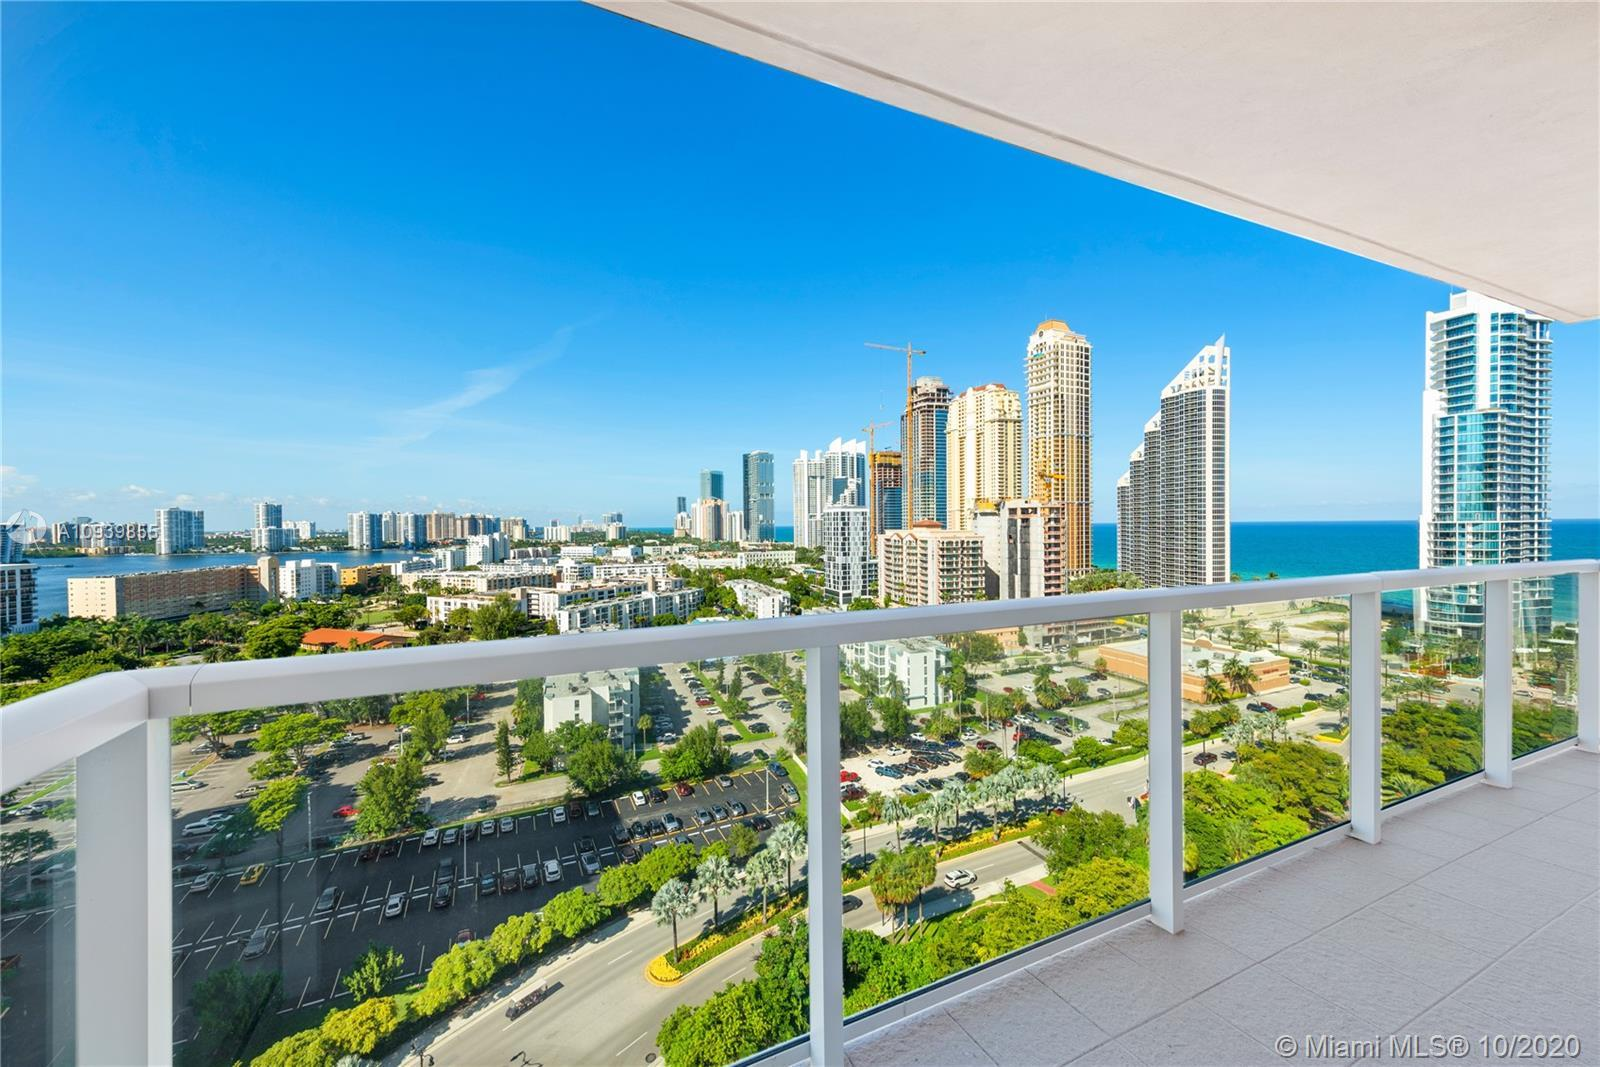 Breathtaking views from this spacious unit in Sunny Isles. This apartment features 2 bedrooms & 2 ba